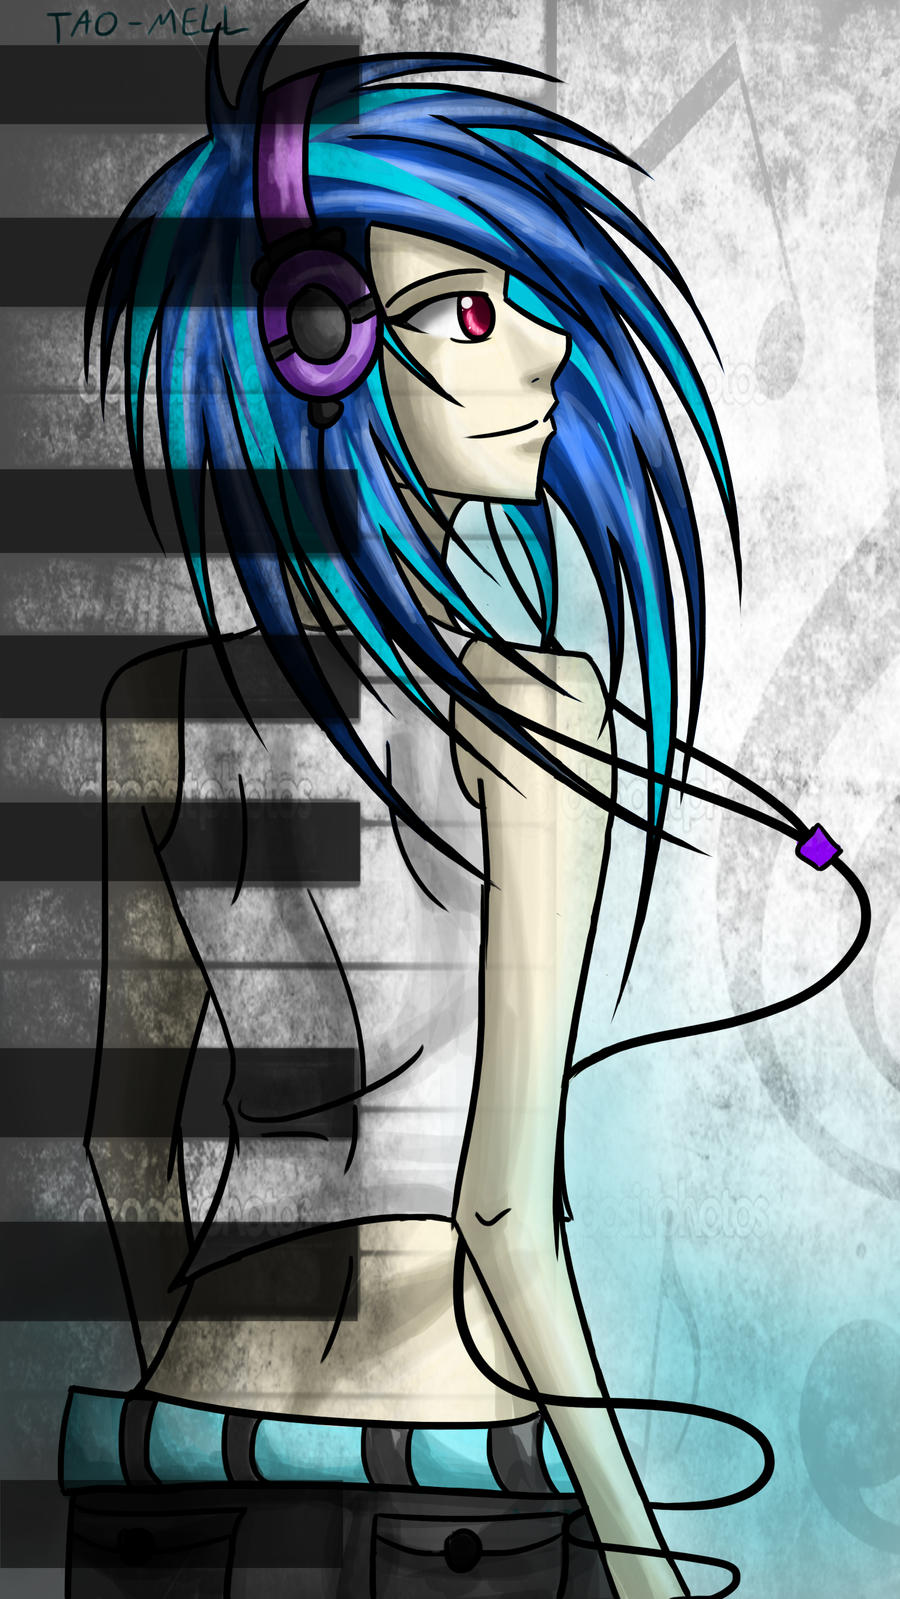 Vinyl Scratch by Tao-mell